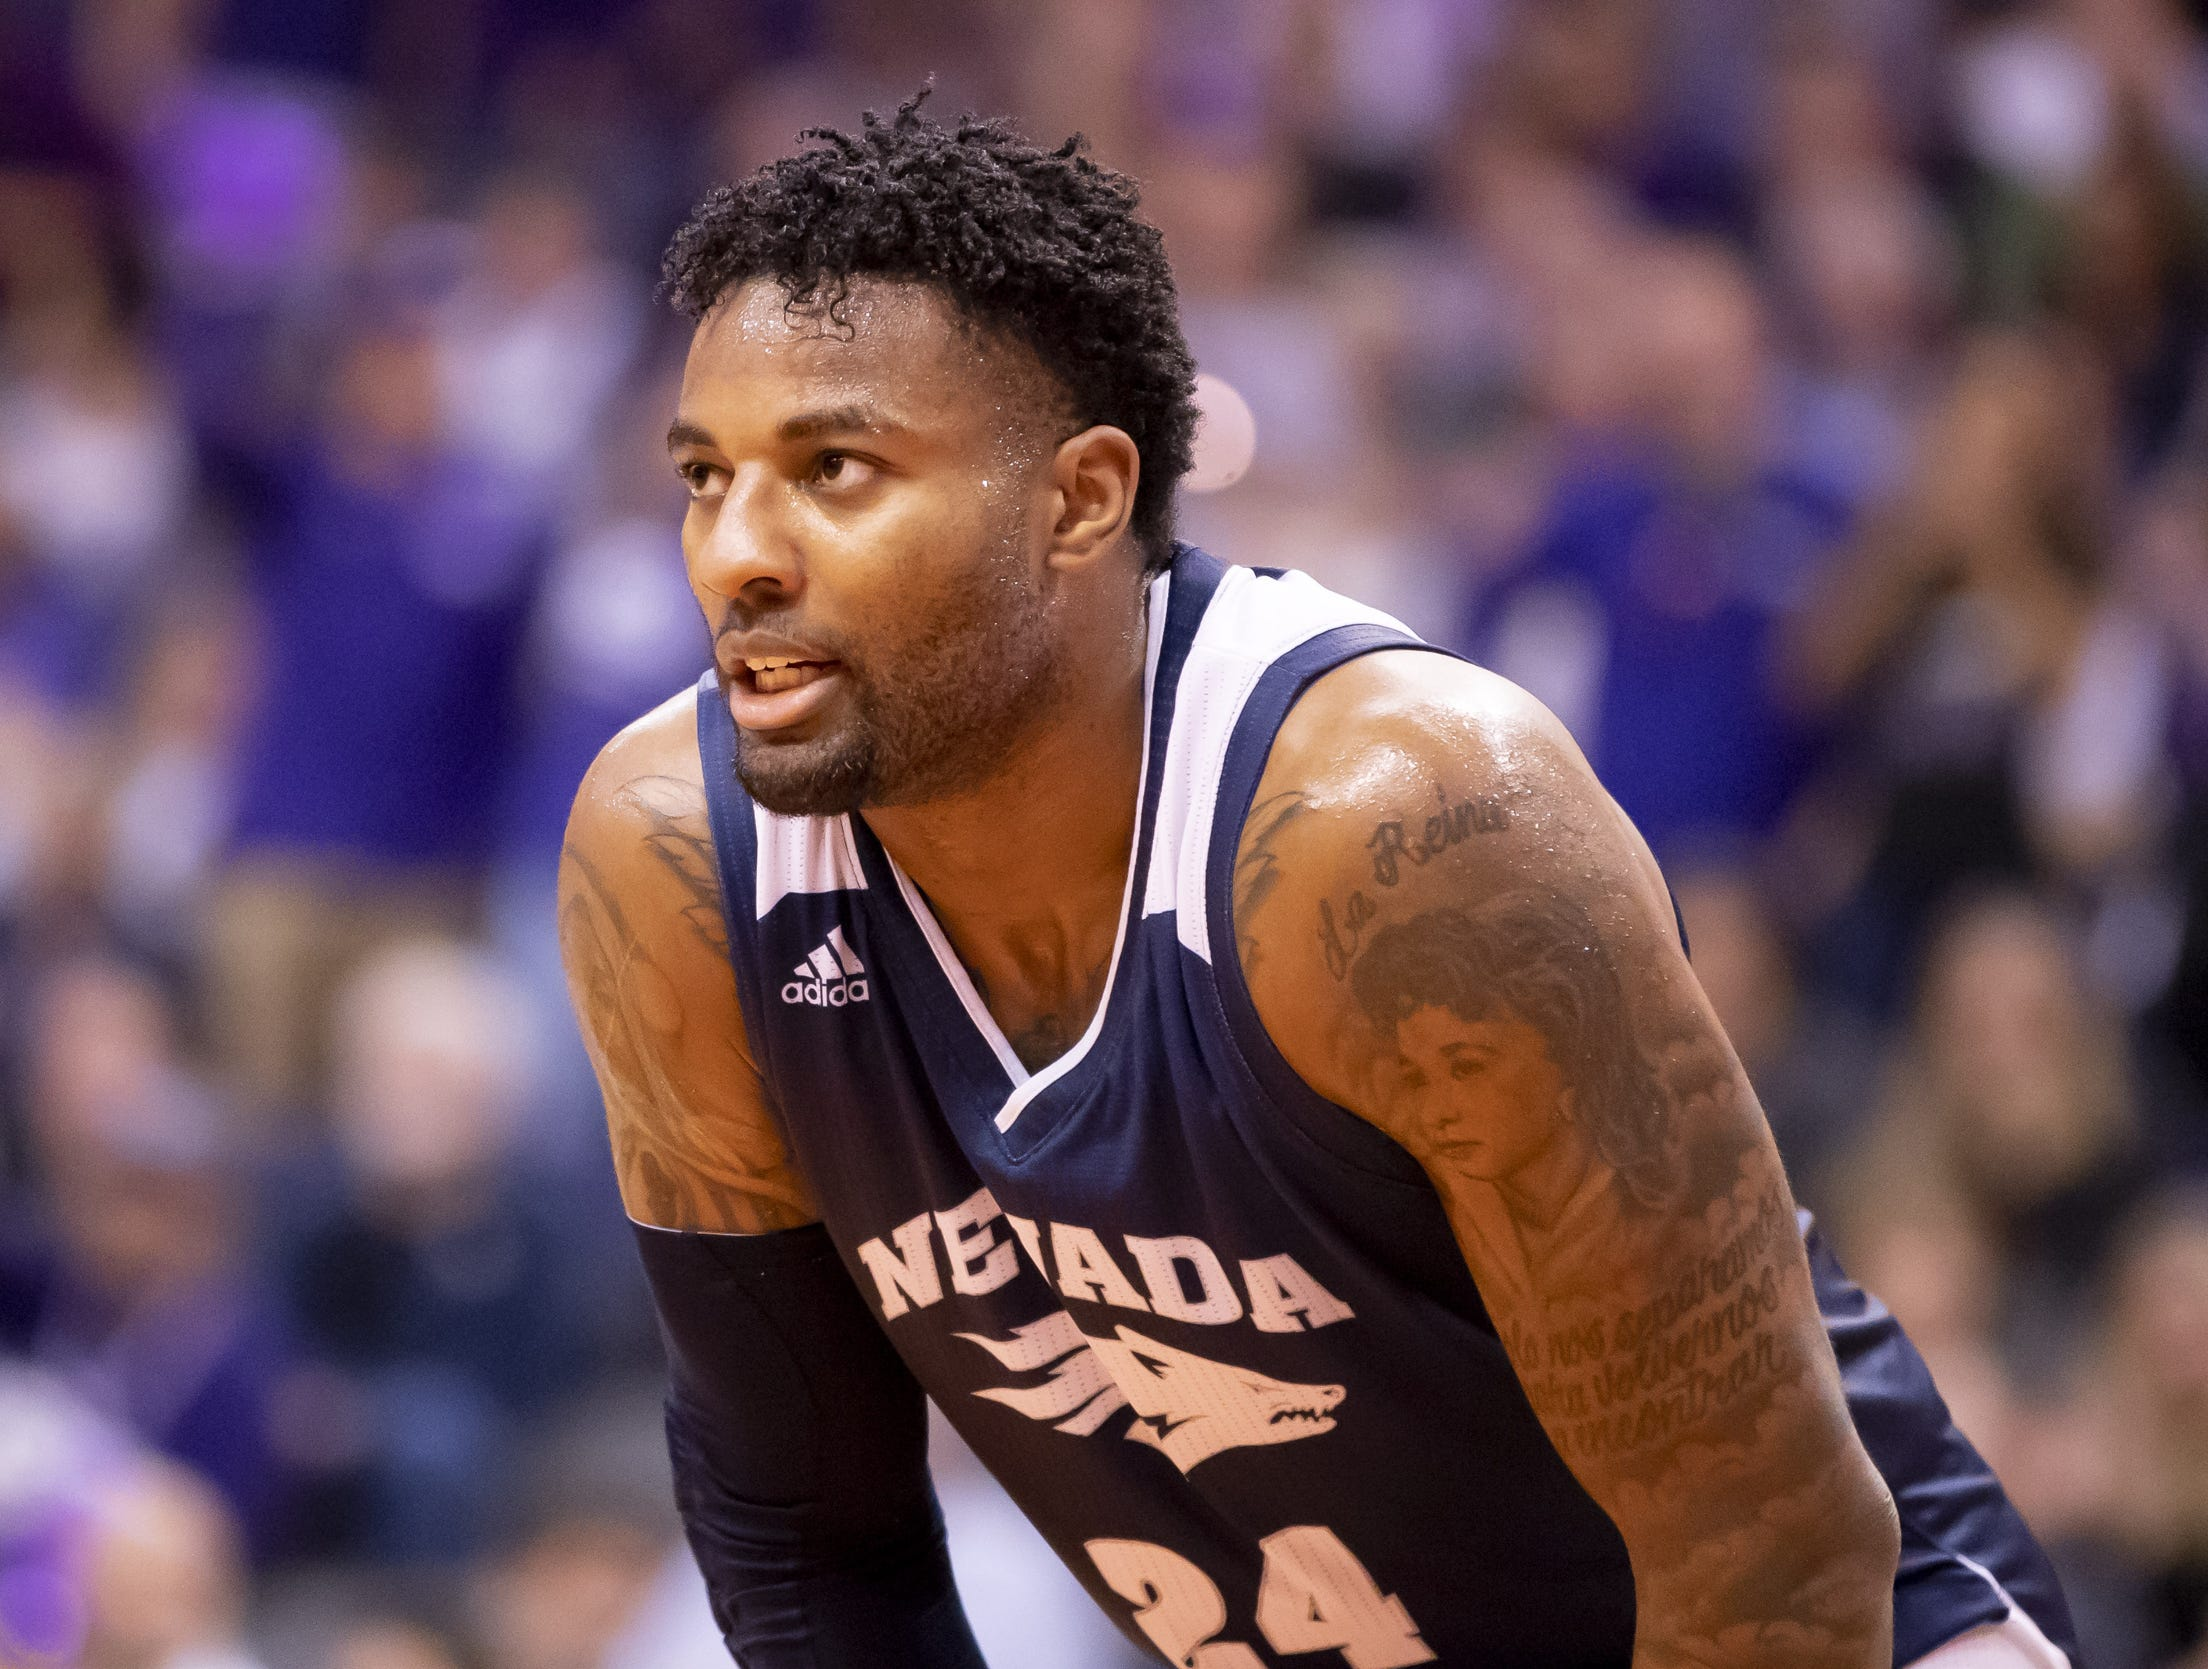 Jordan Caroline (24) of Nevada Wolf Pack looks on during the 2018 Jerry Colangelo Classic against the Grand Canyon Antelopes at Talking Stick Resort Arena on Sunday, December 9, 2018 in Phoenix, Arizona.